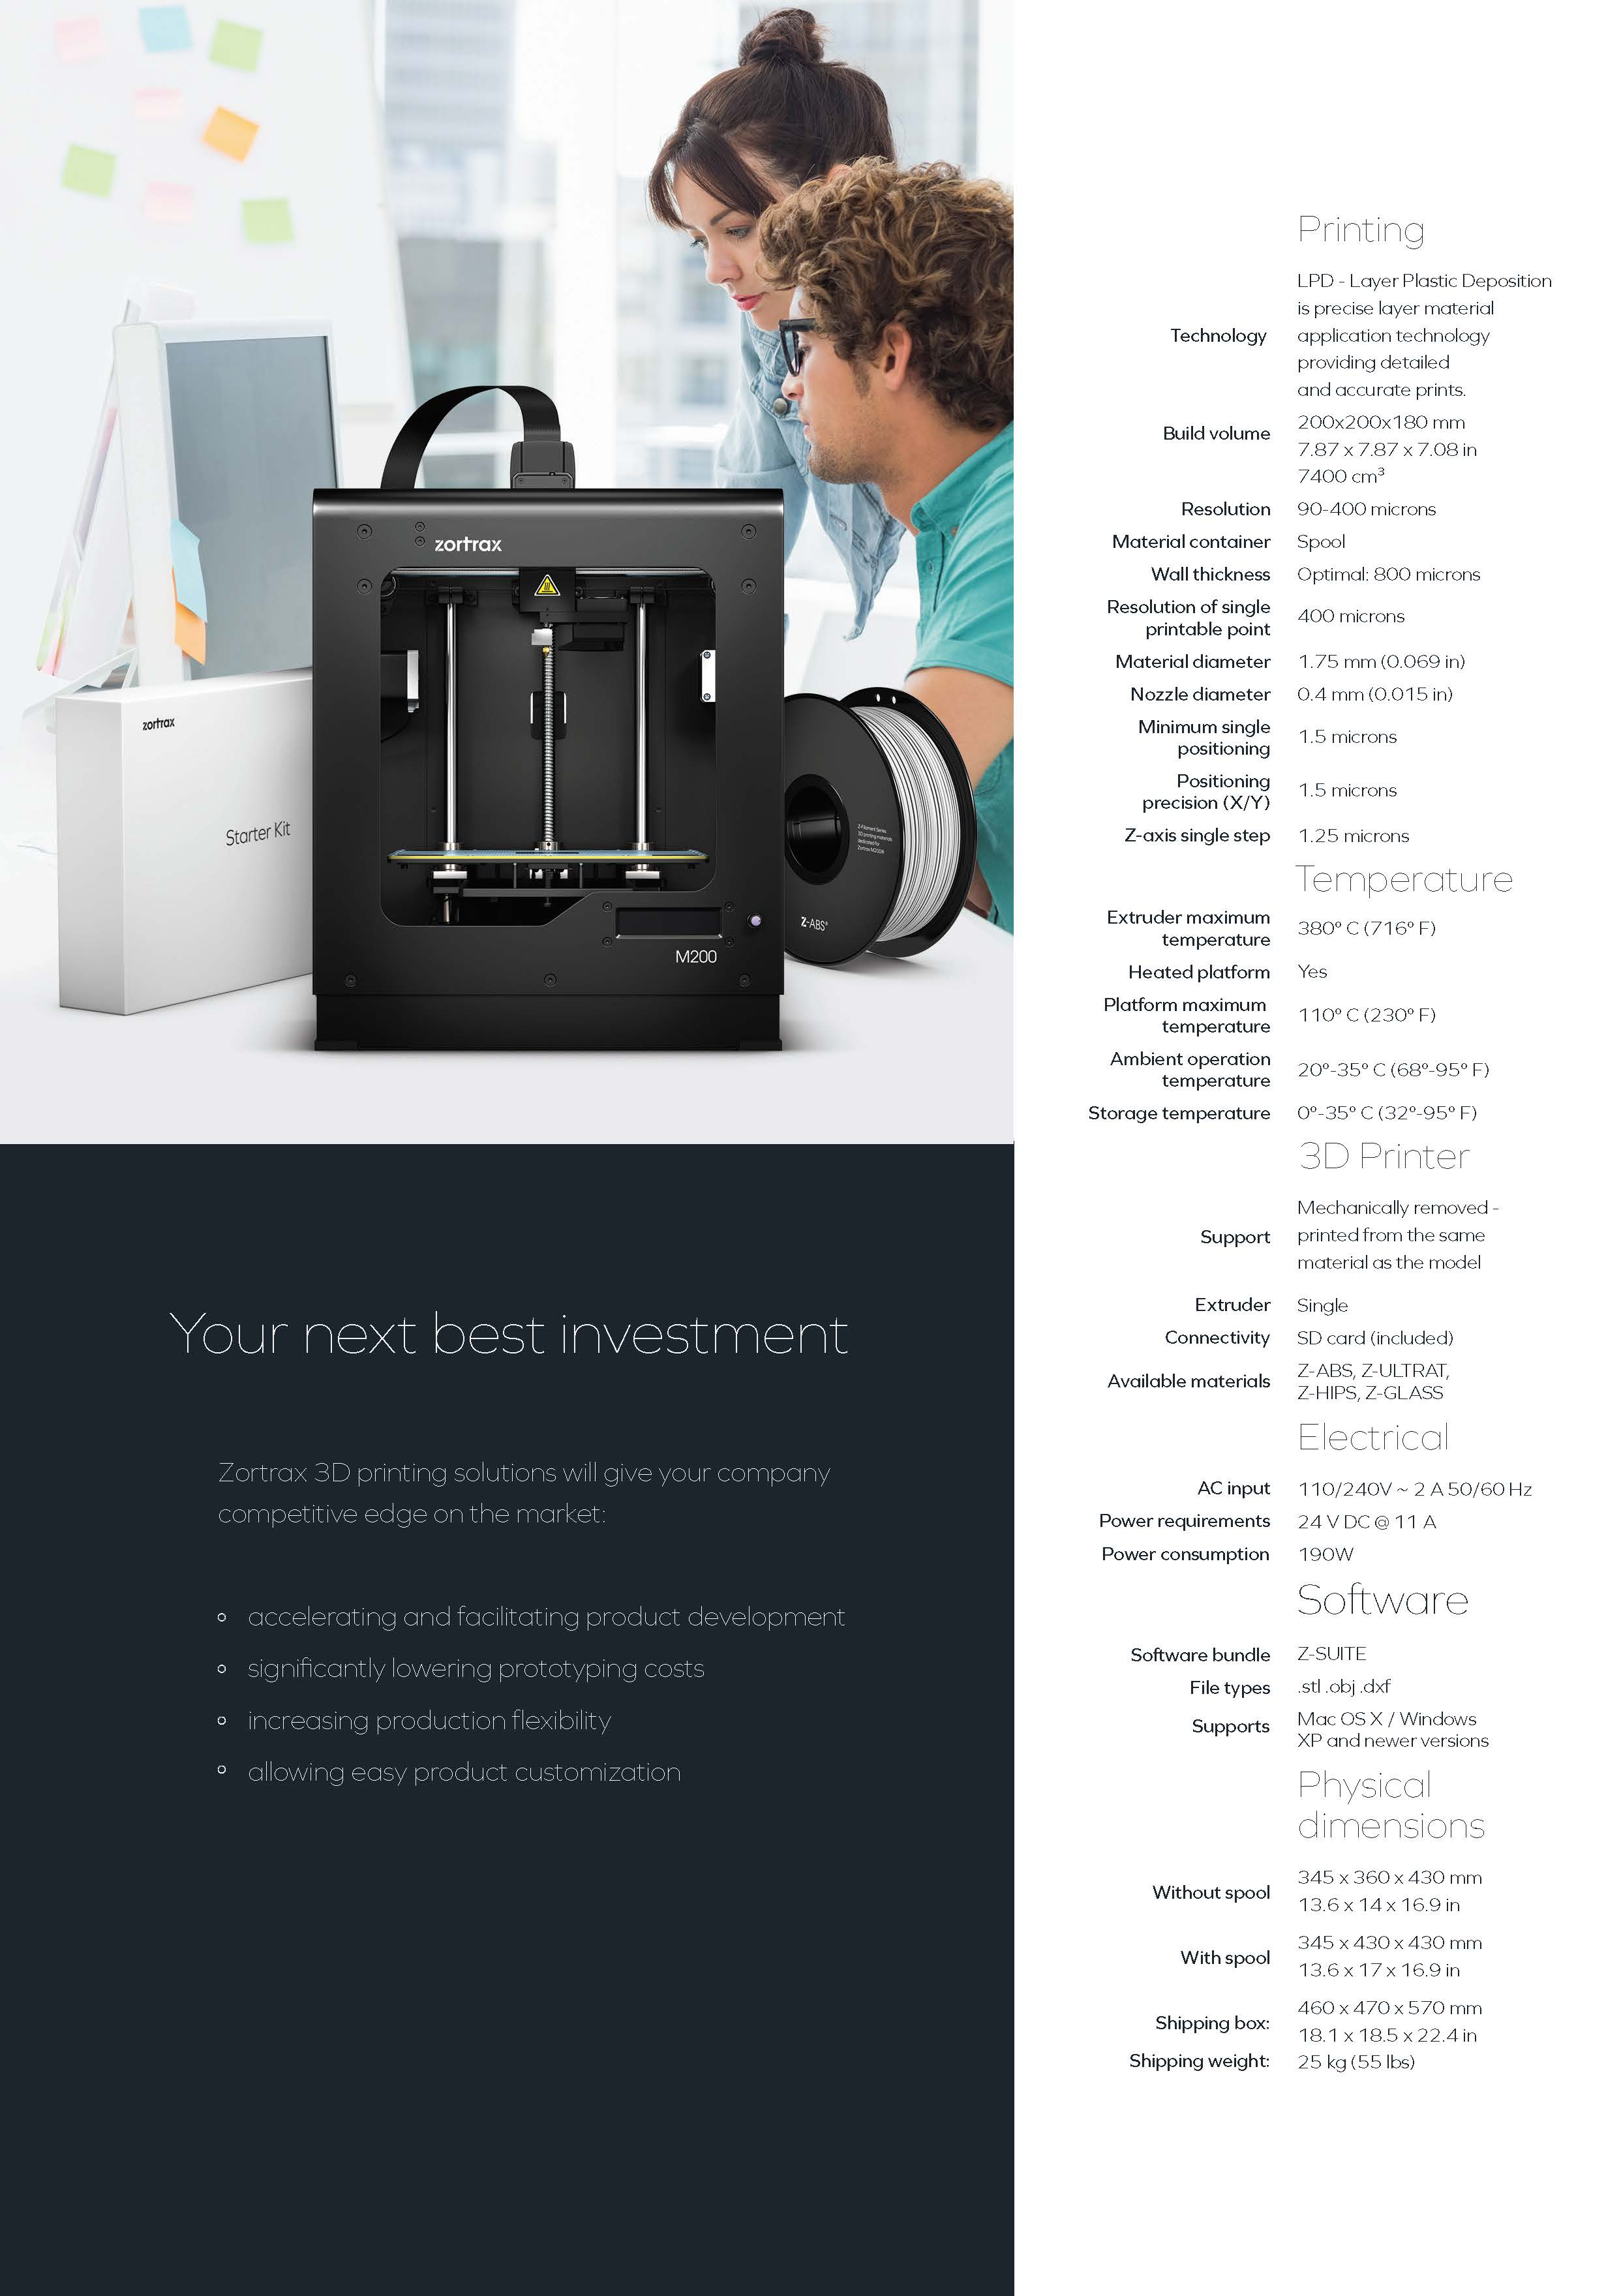 Zortrax M200 Brochure Ultimate 3D Printing Store